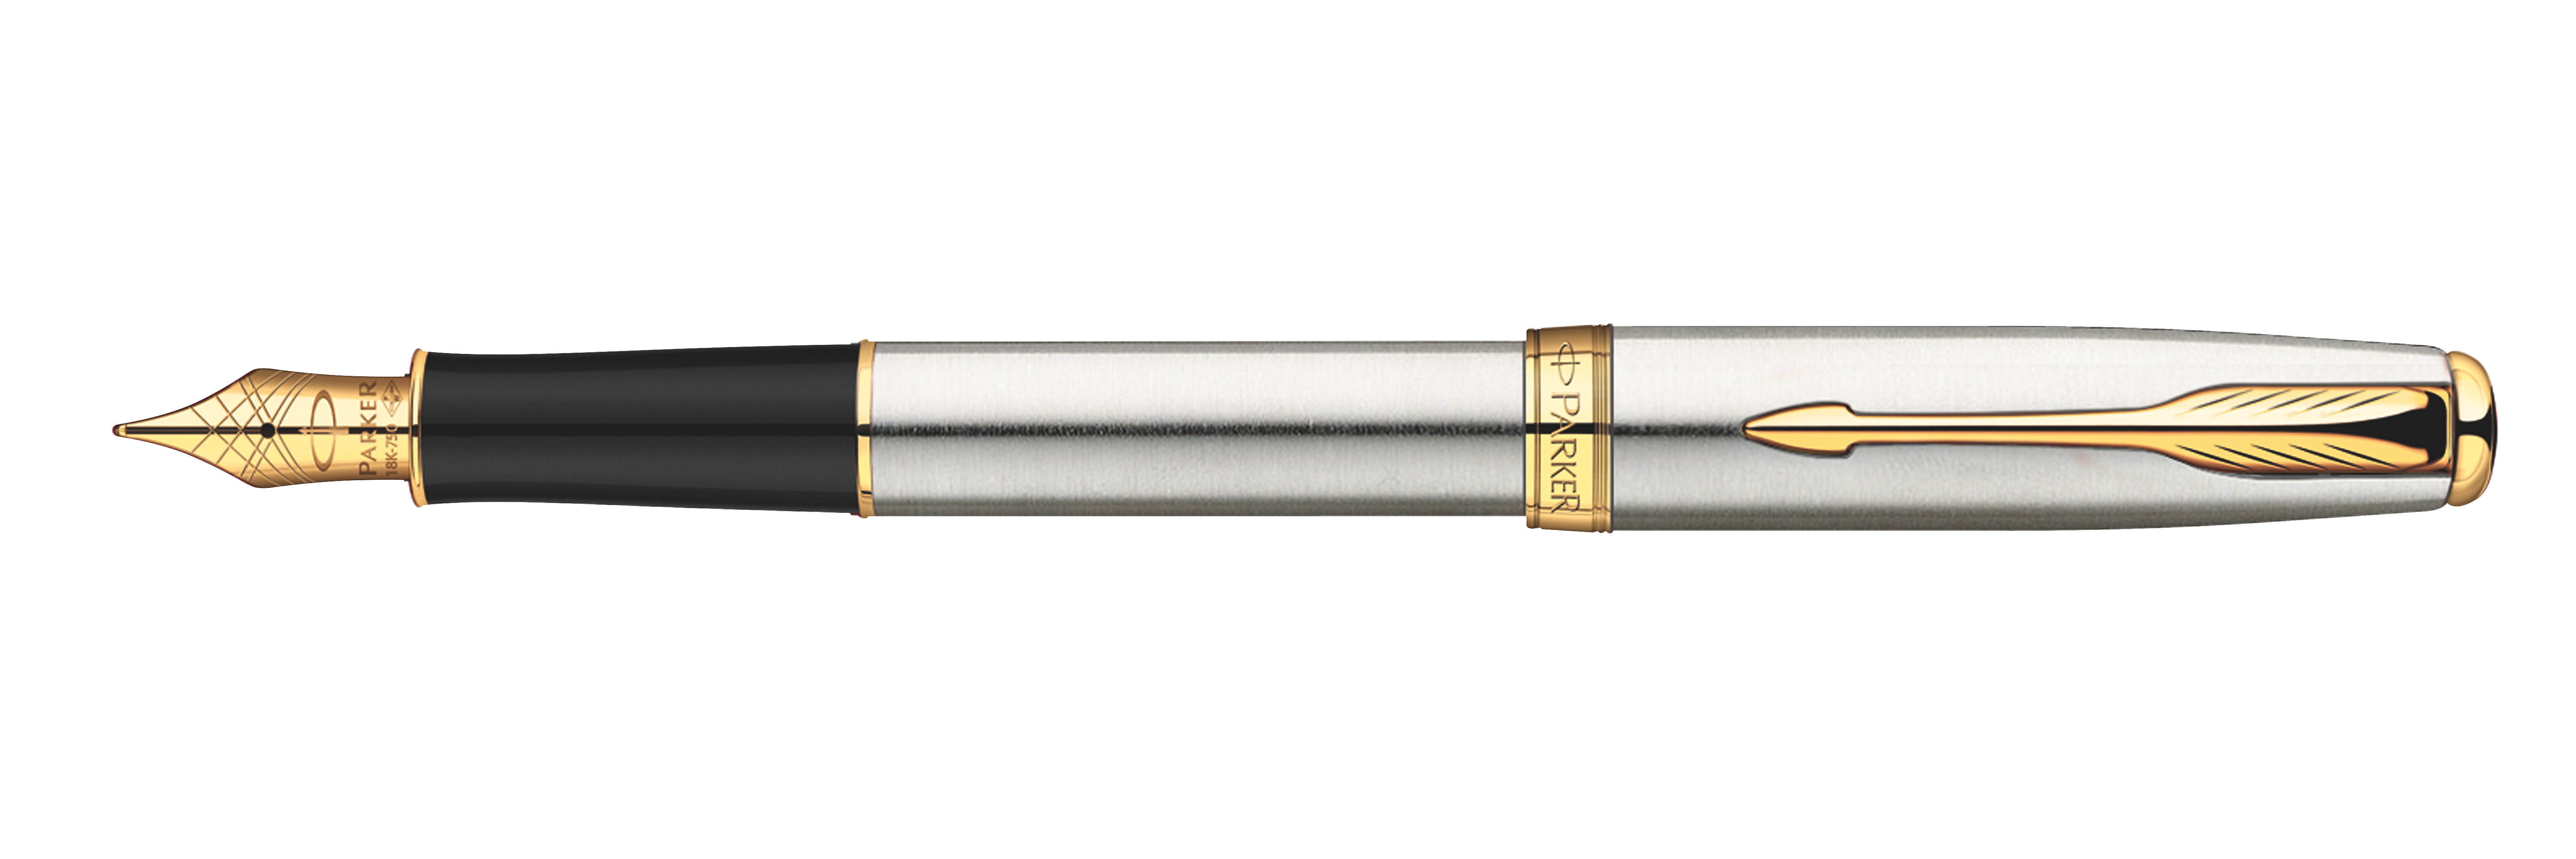 Parker Sonnet Original Stainless Steel GT - Med Pt Fountain Pen